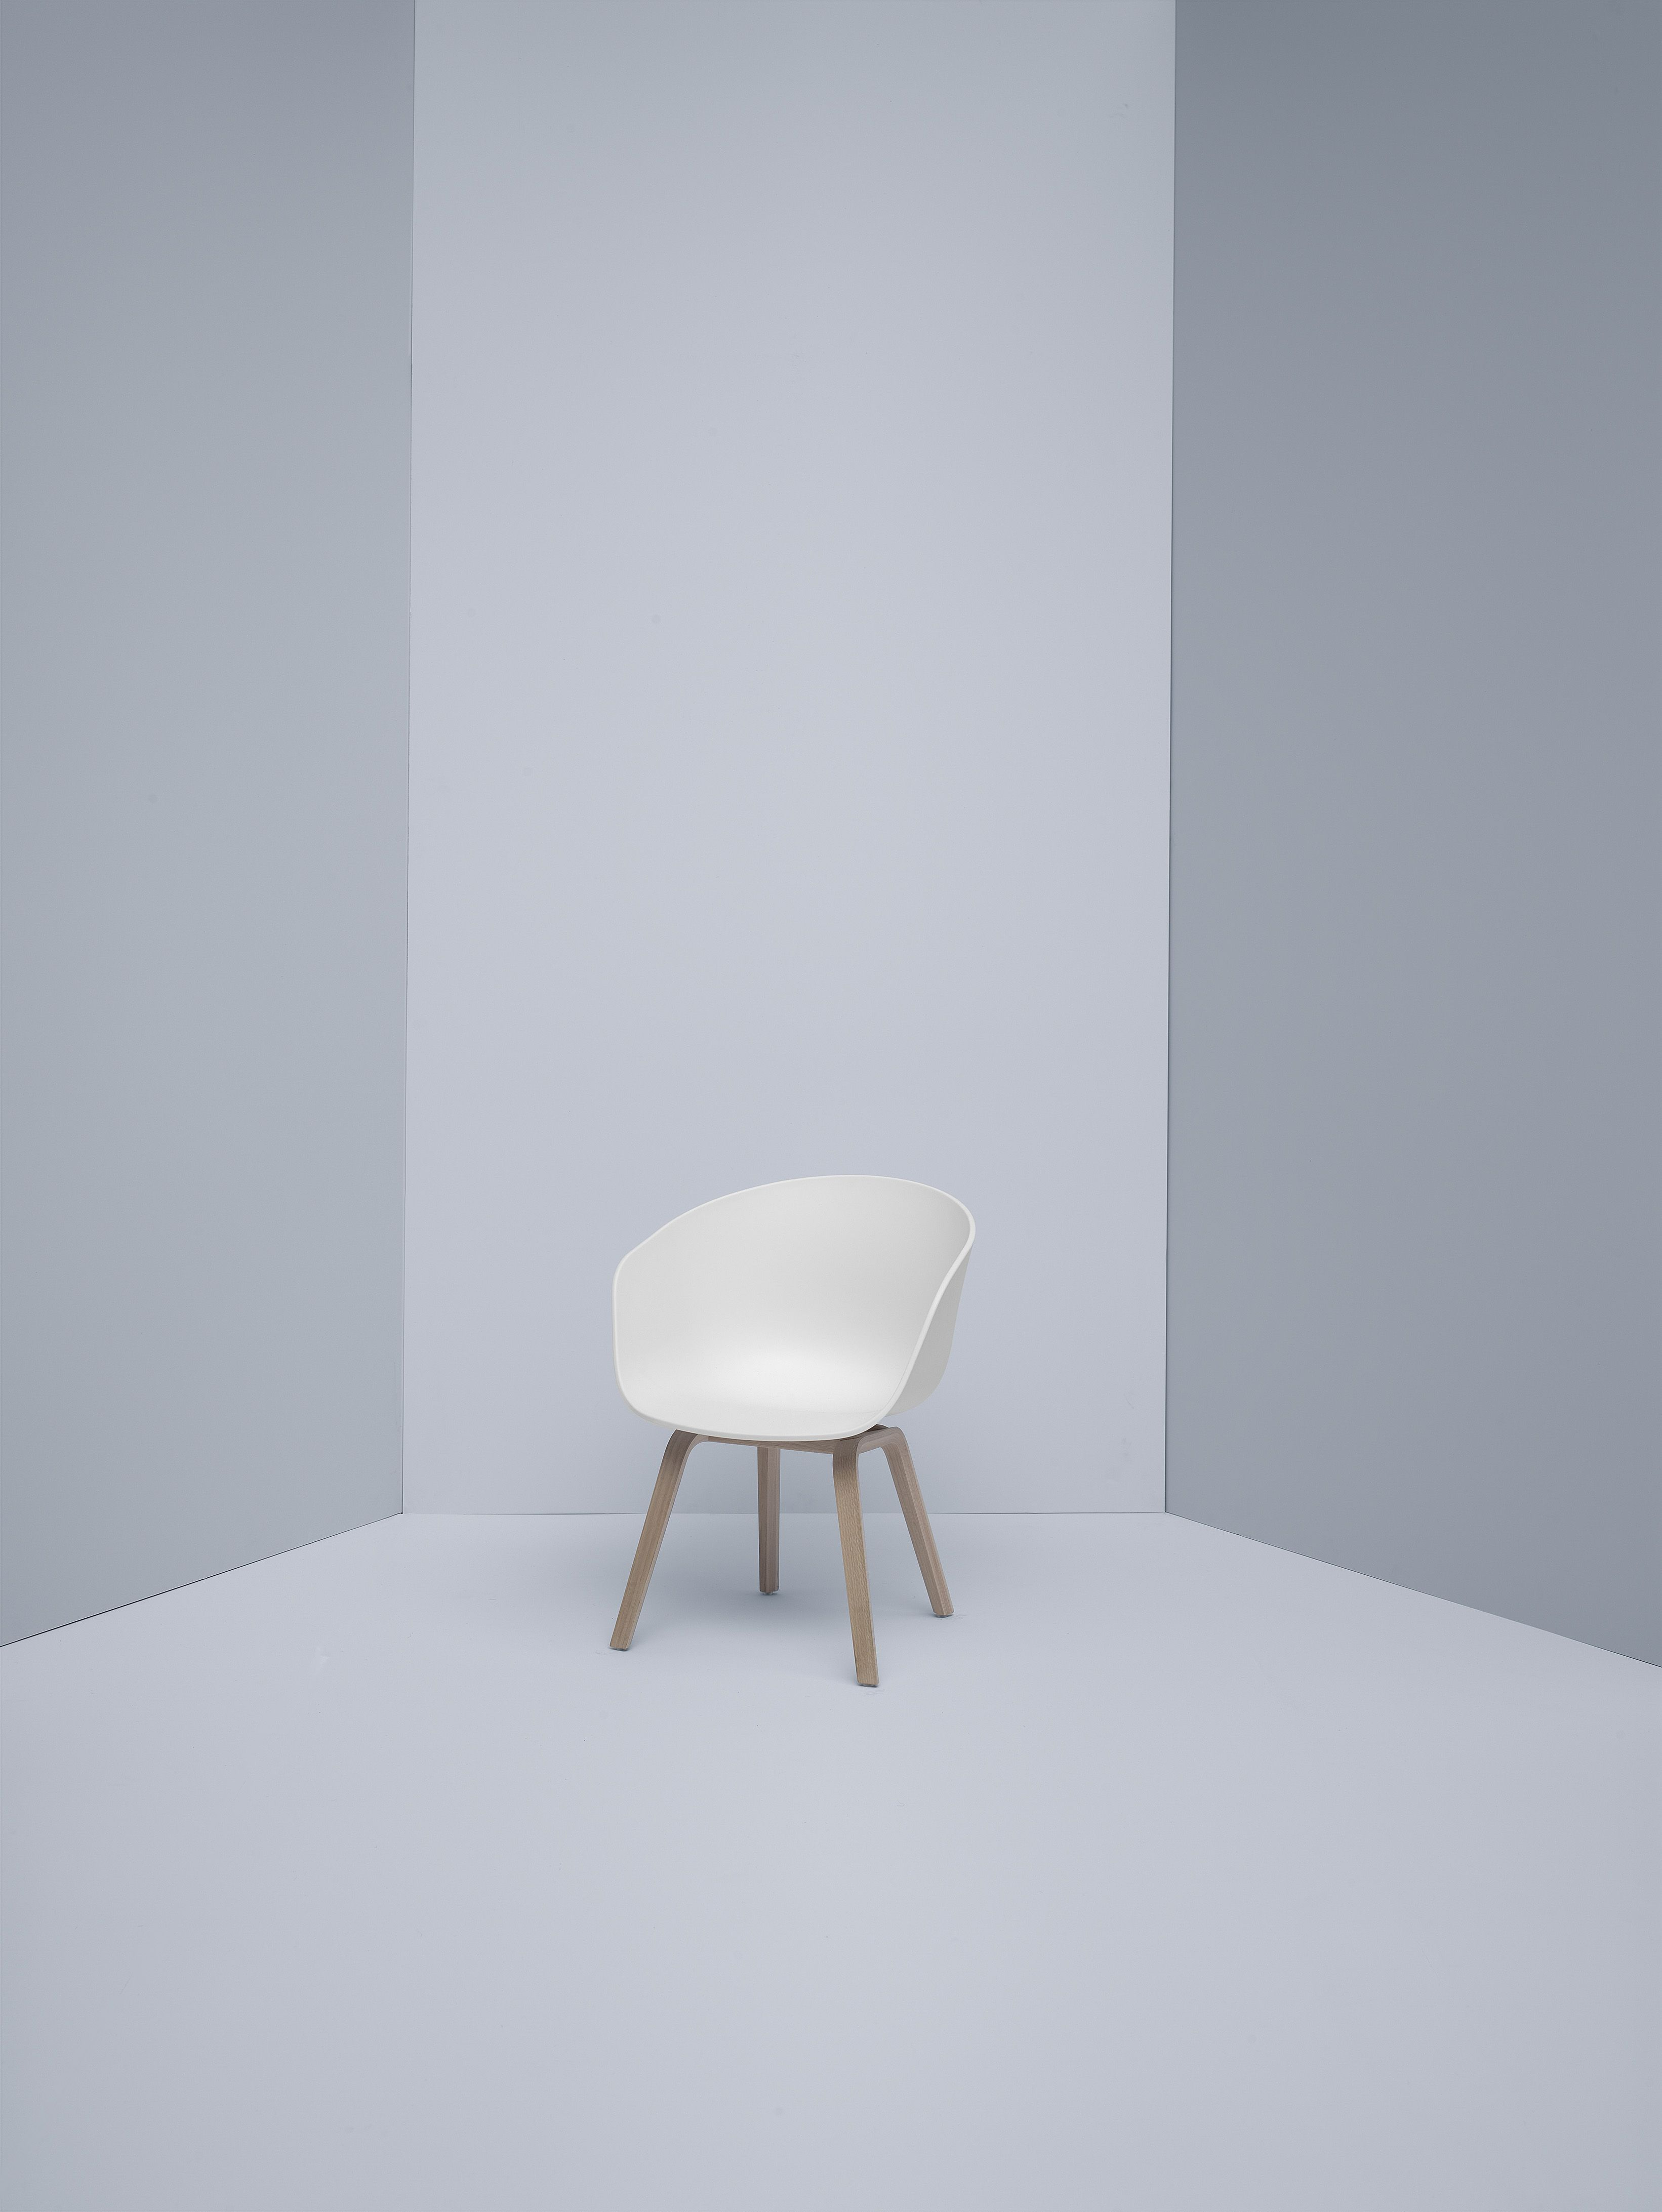 Sessel Hay Hay Chair About A Chair W I S H L I S T Pinterest Sessel